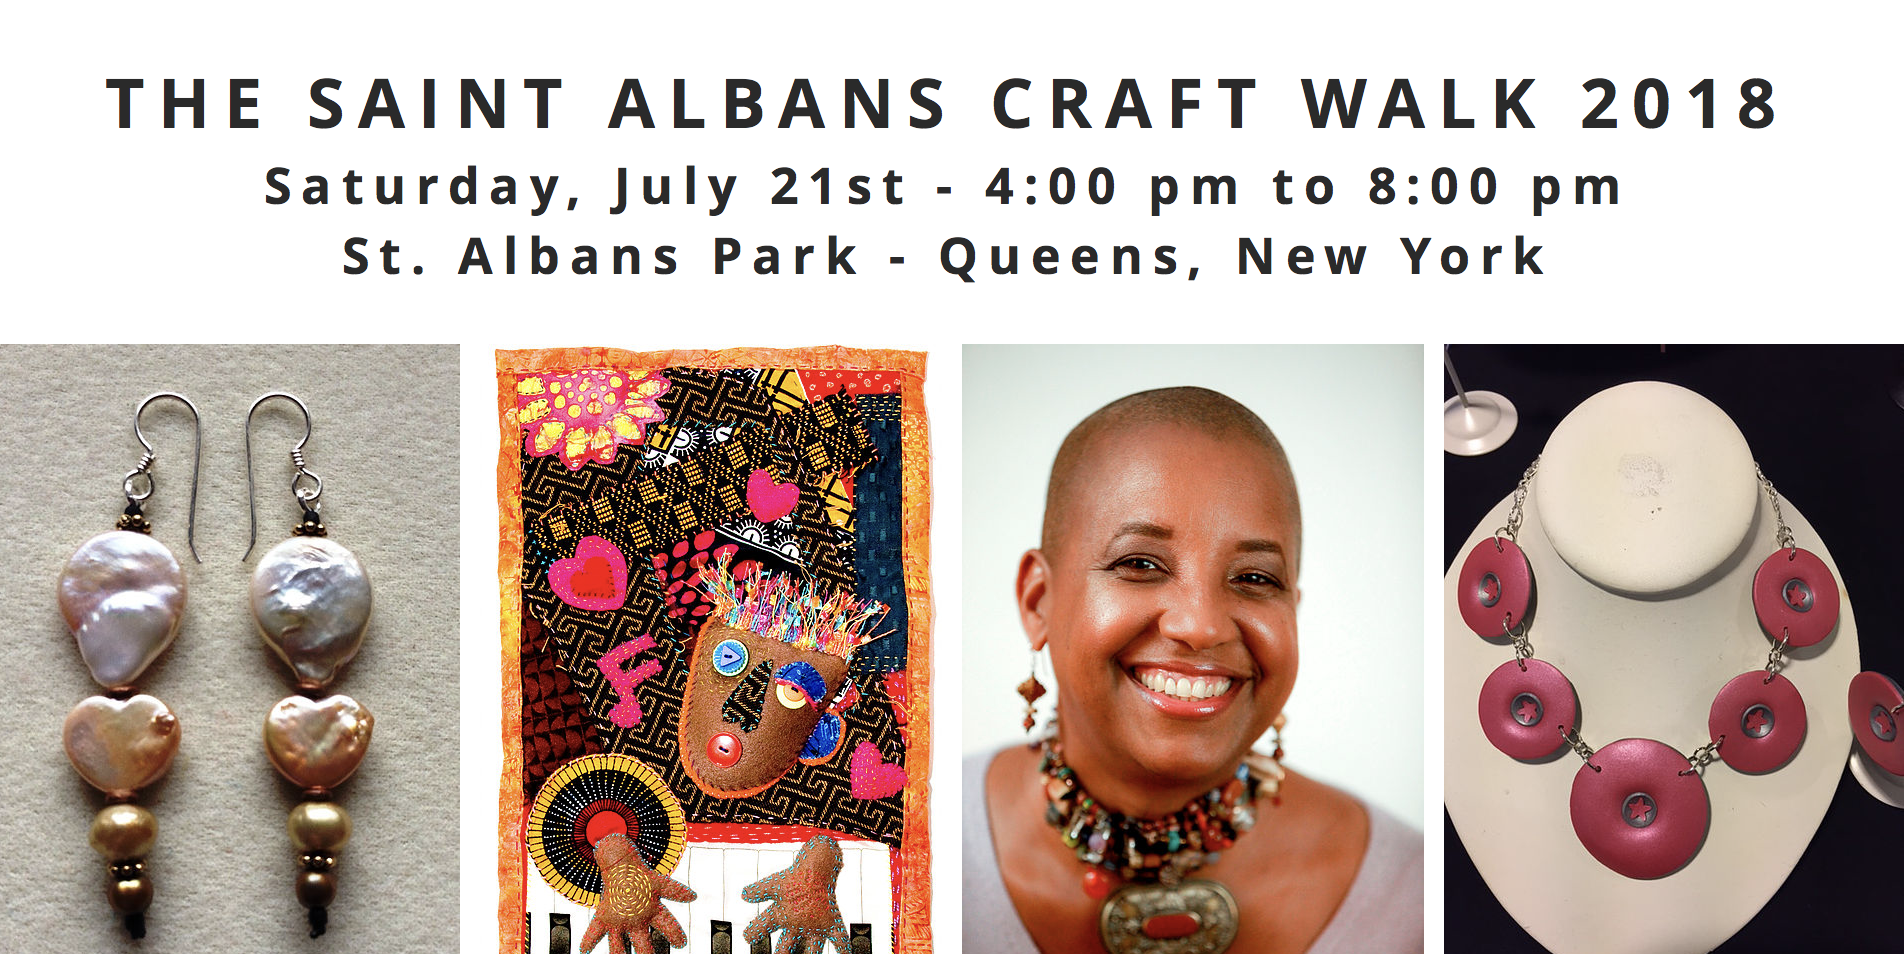 Click here to register as an artisan for The Saint Albans Craft Walk!